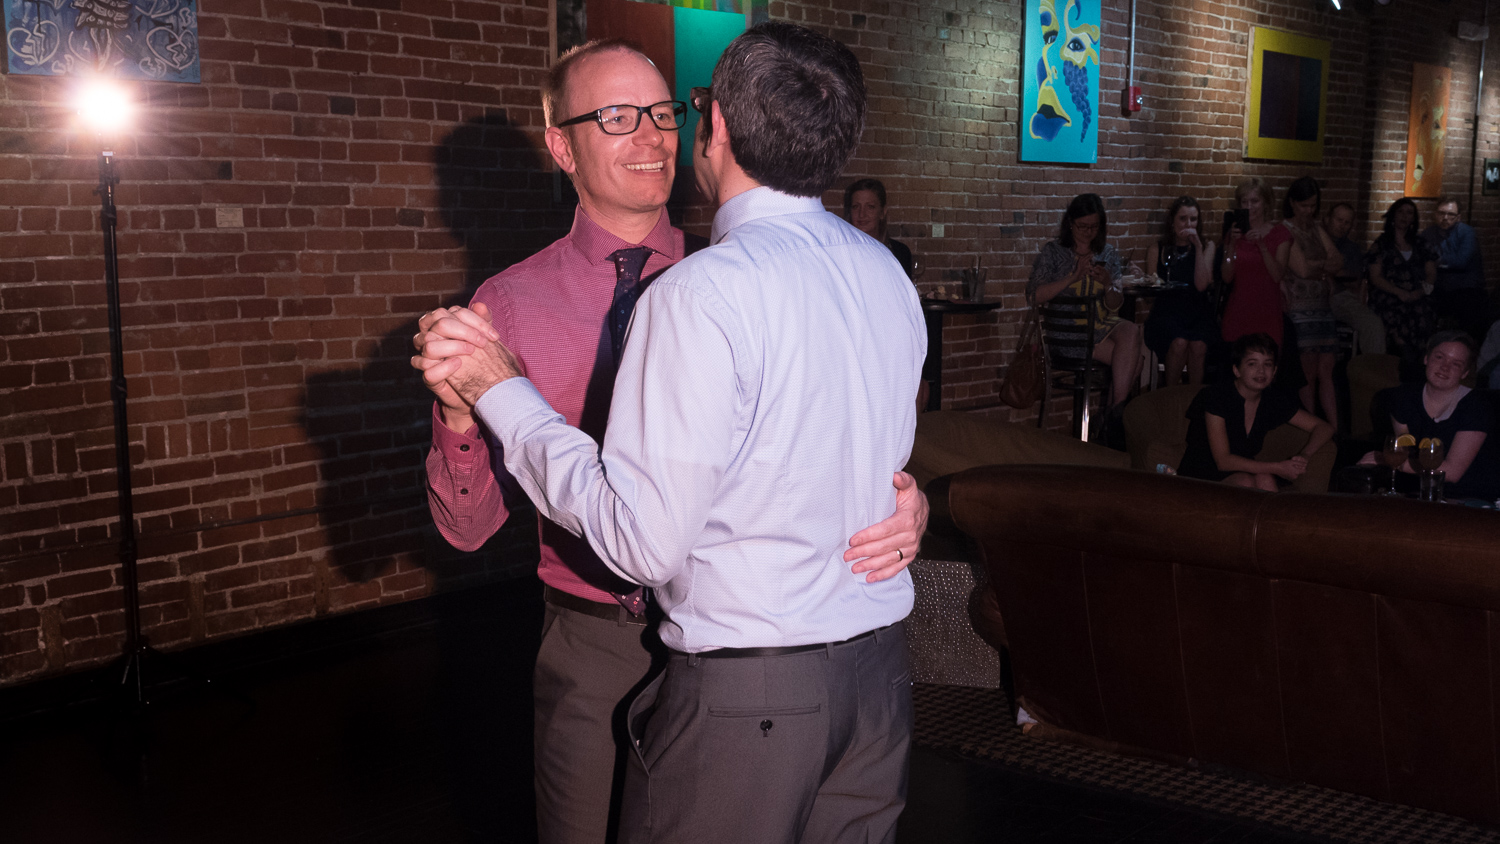 same-sex-wedding-dancing-2.jpg